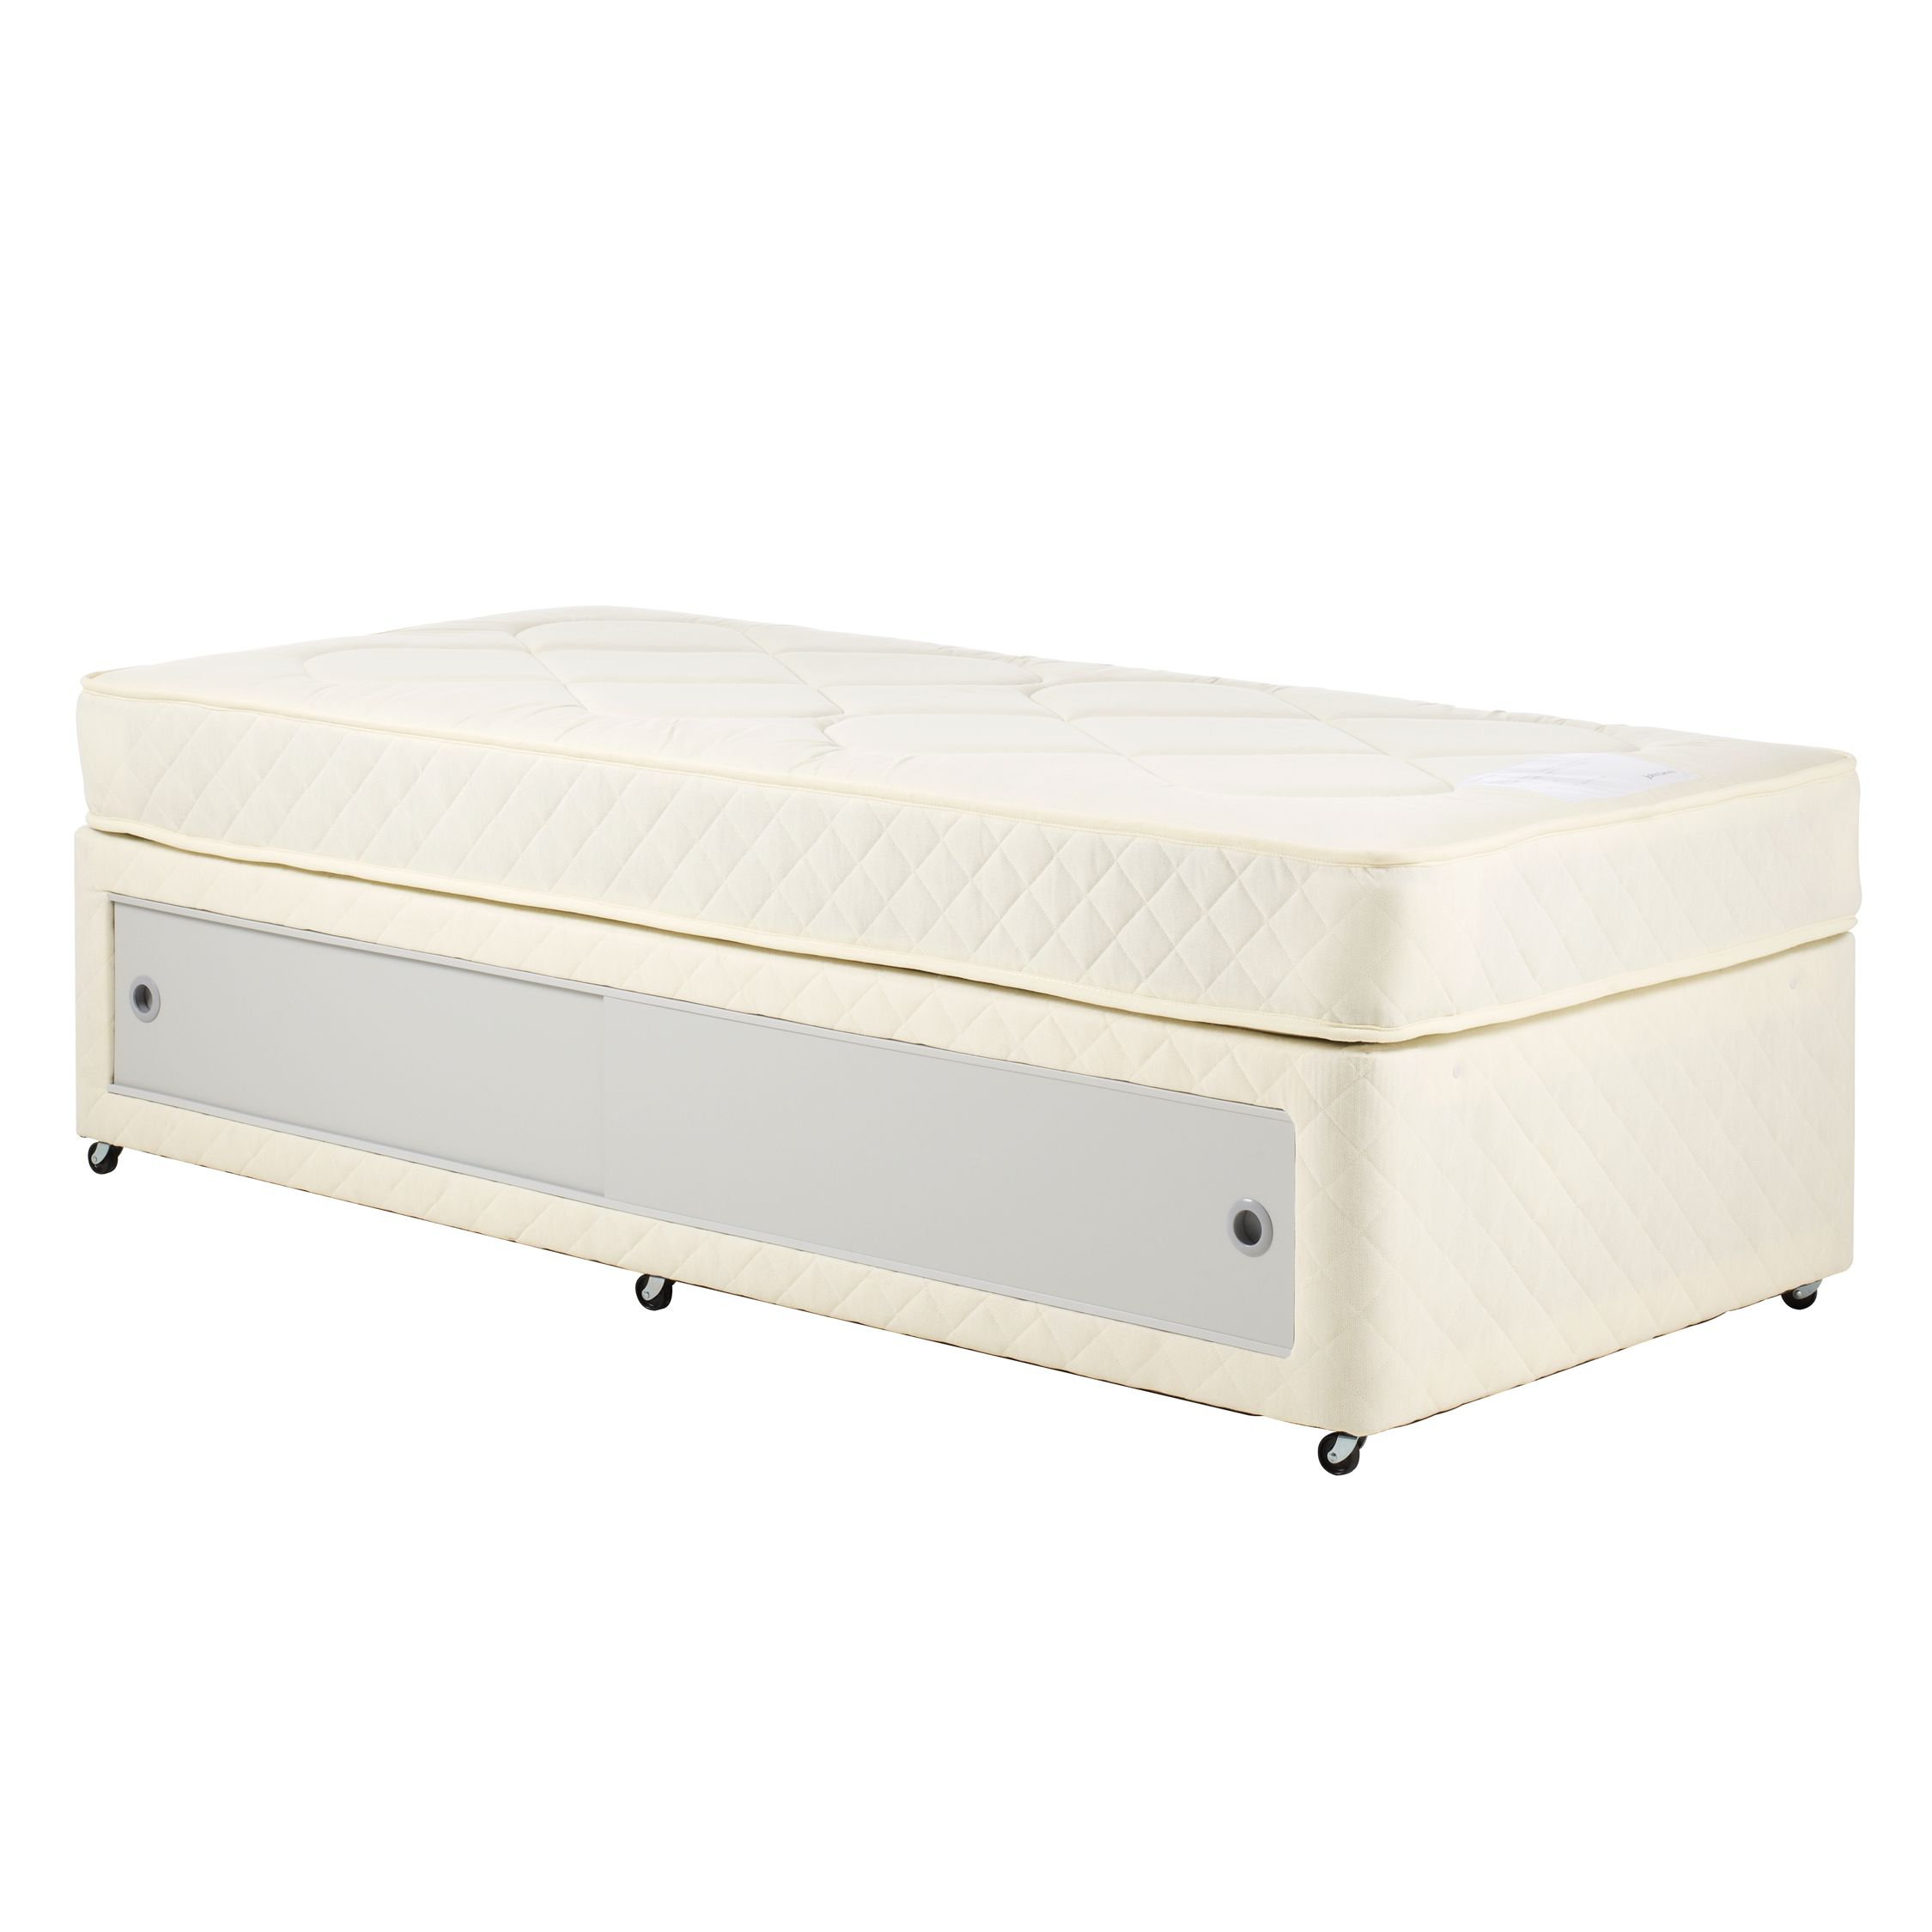 John Lewis Slide Store Divan Set, Single at JohnLewis